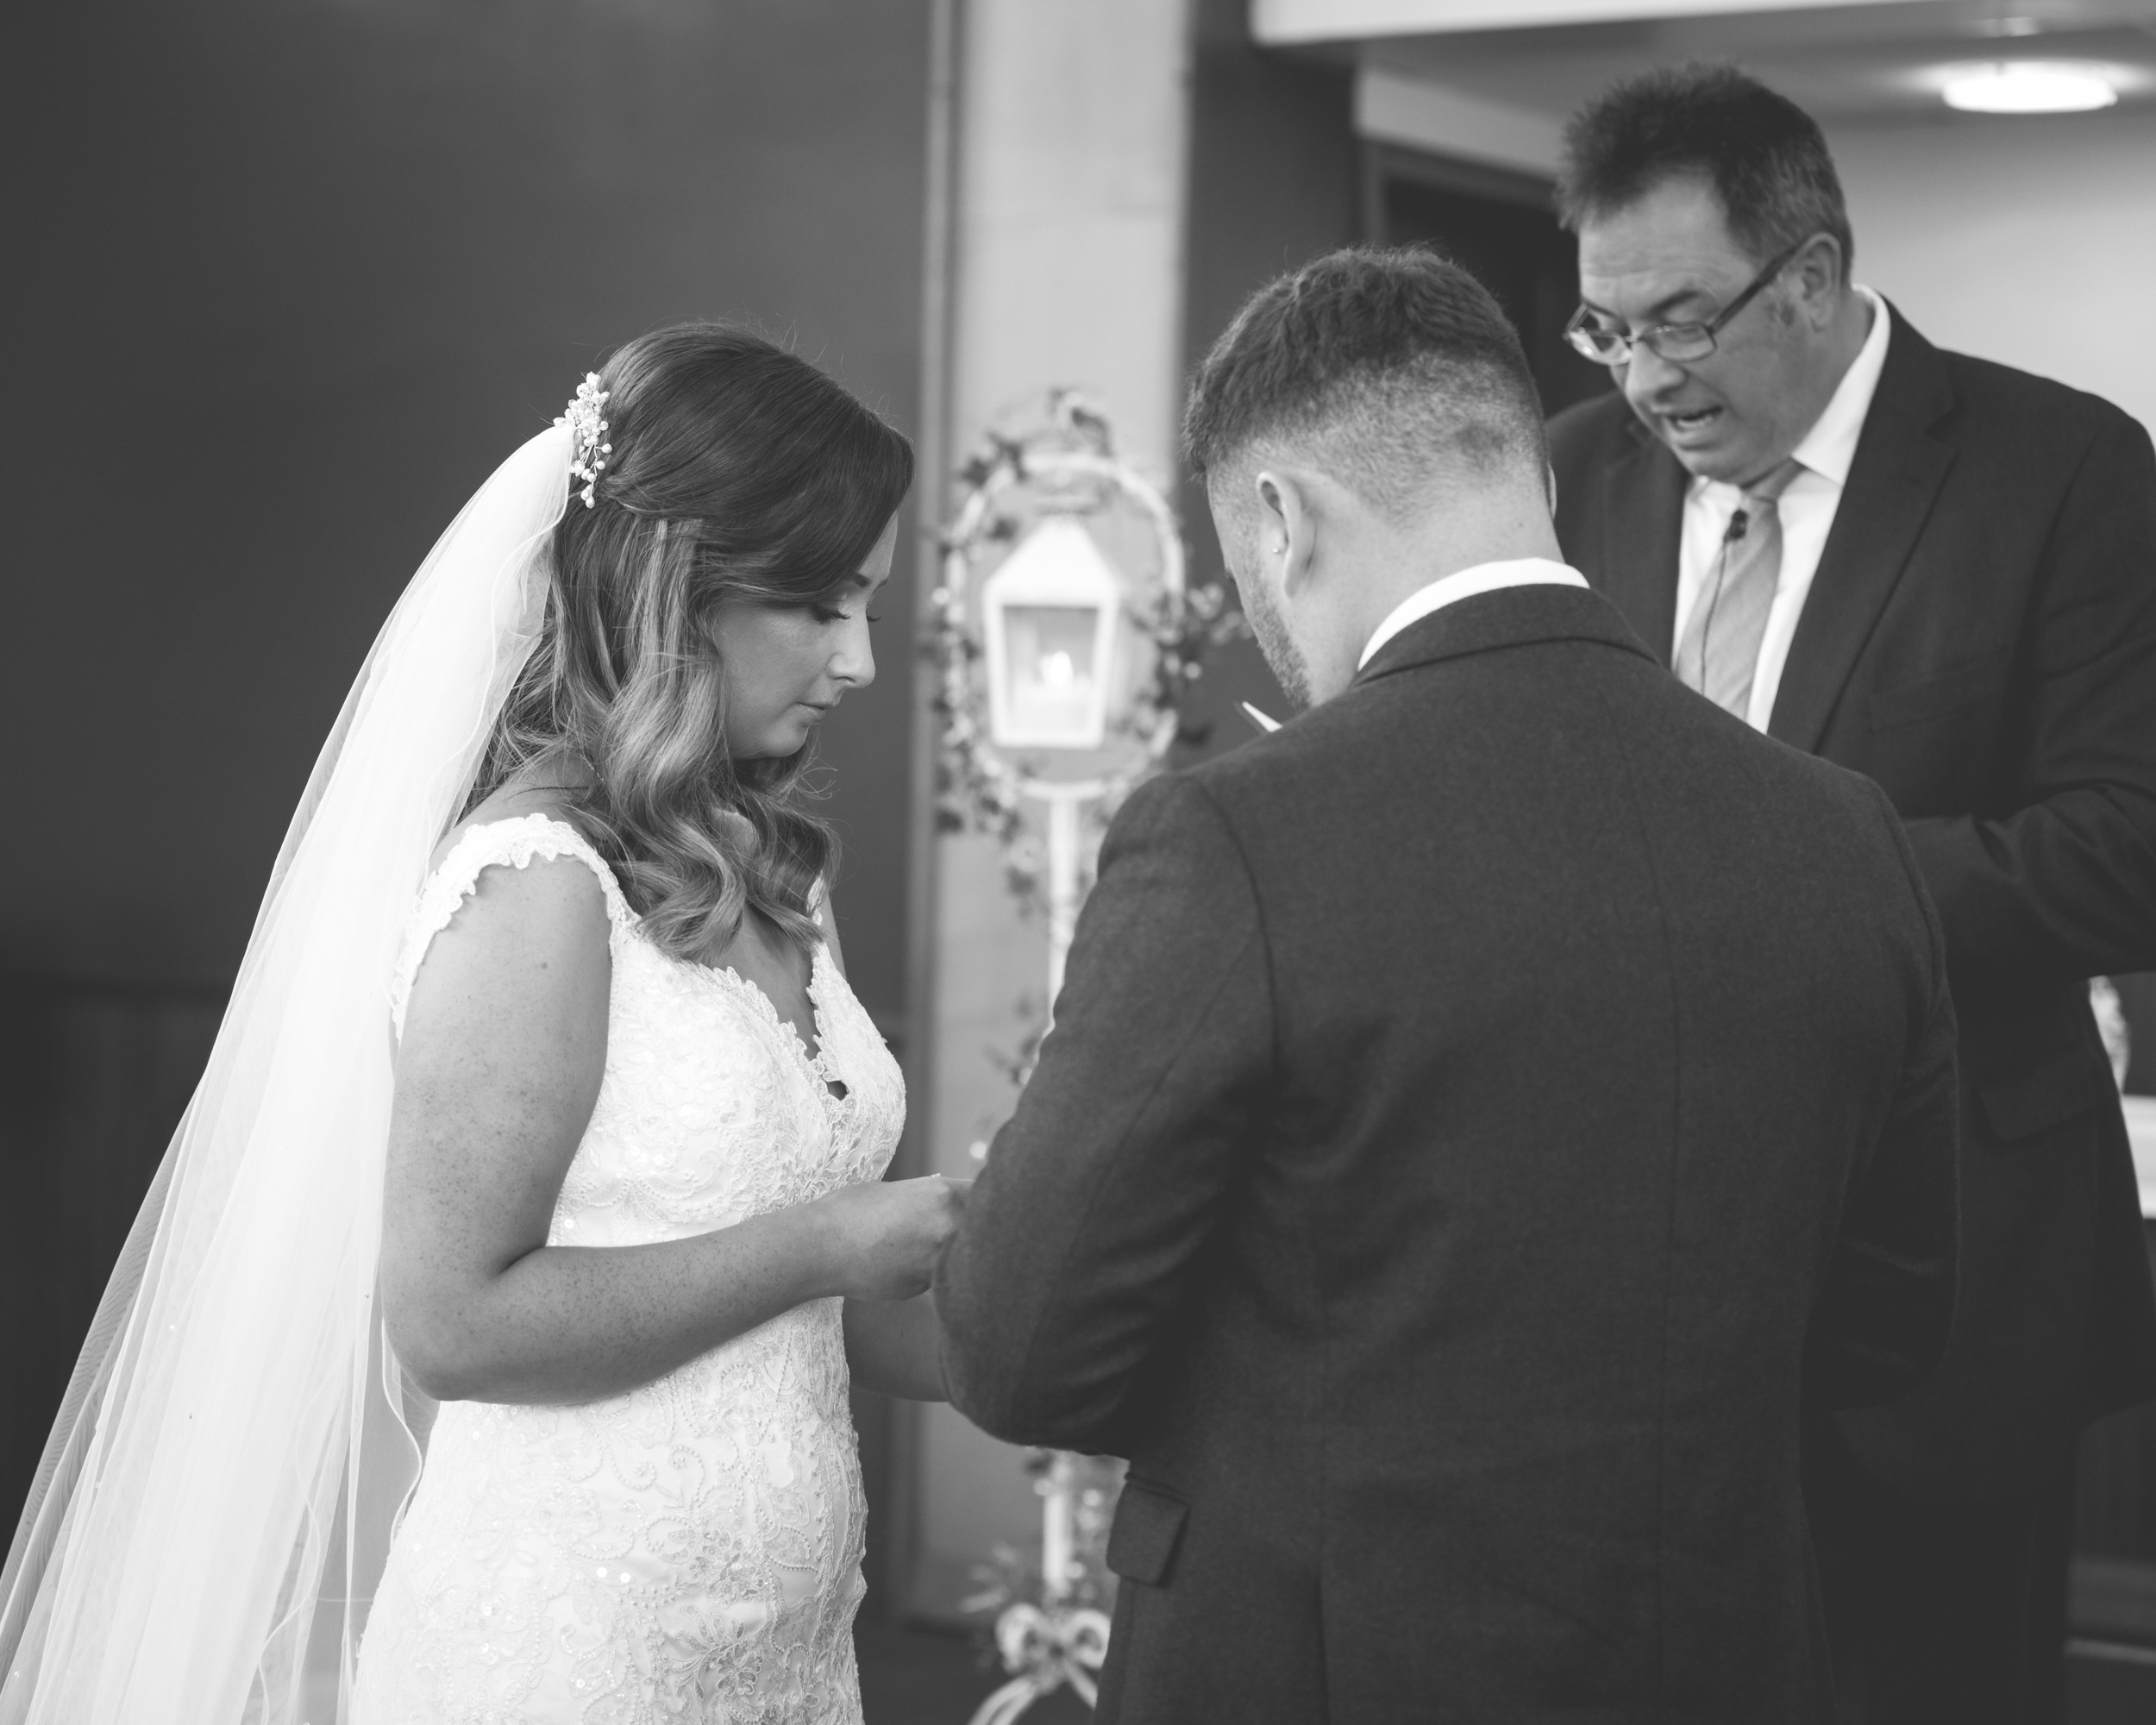 Brian McEwan | Northern Ireland Wedding Photographer | Rebecca & Michael | Ceremony-69.jpg